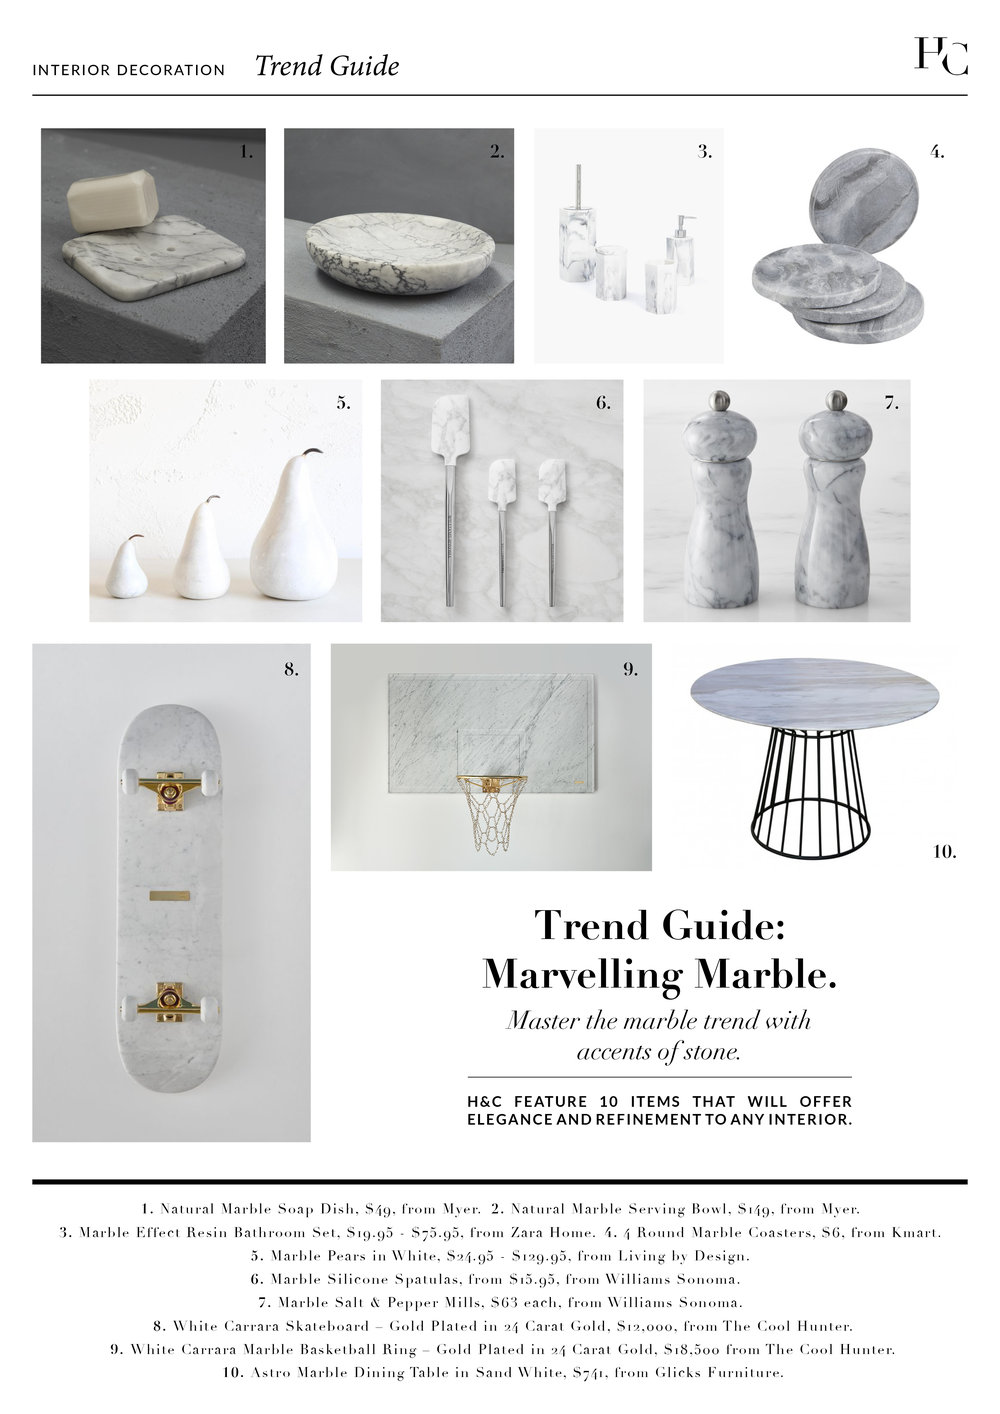 Trend Guide: Marvelling Marble, by House & Court, House & Court, Interior Design, Sydney